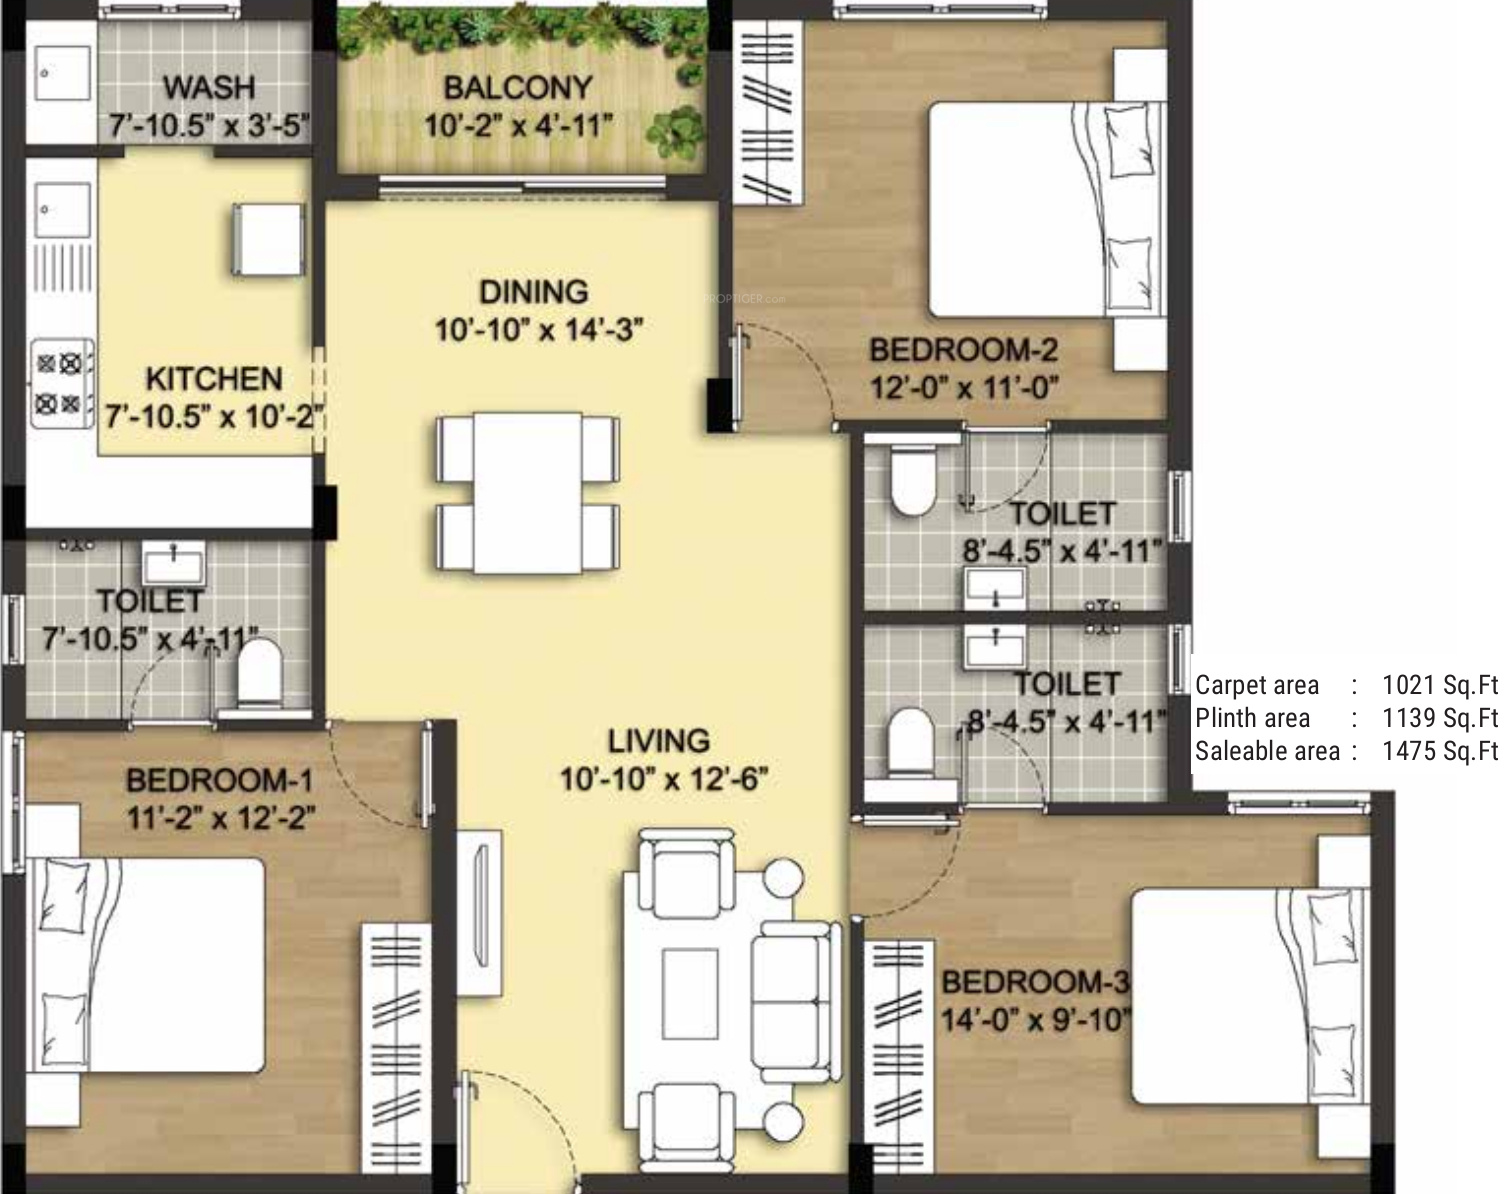 How much carpet do i need for 500 square feet carpet for Floor plan cost